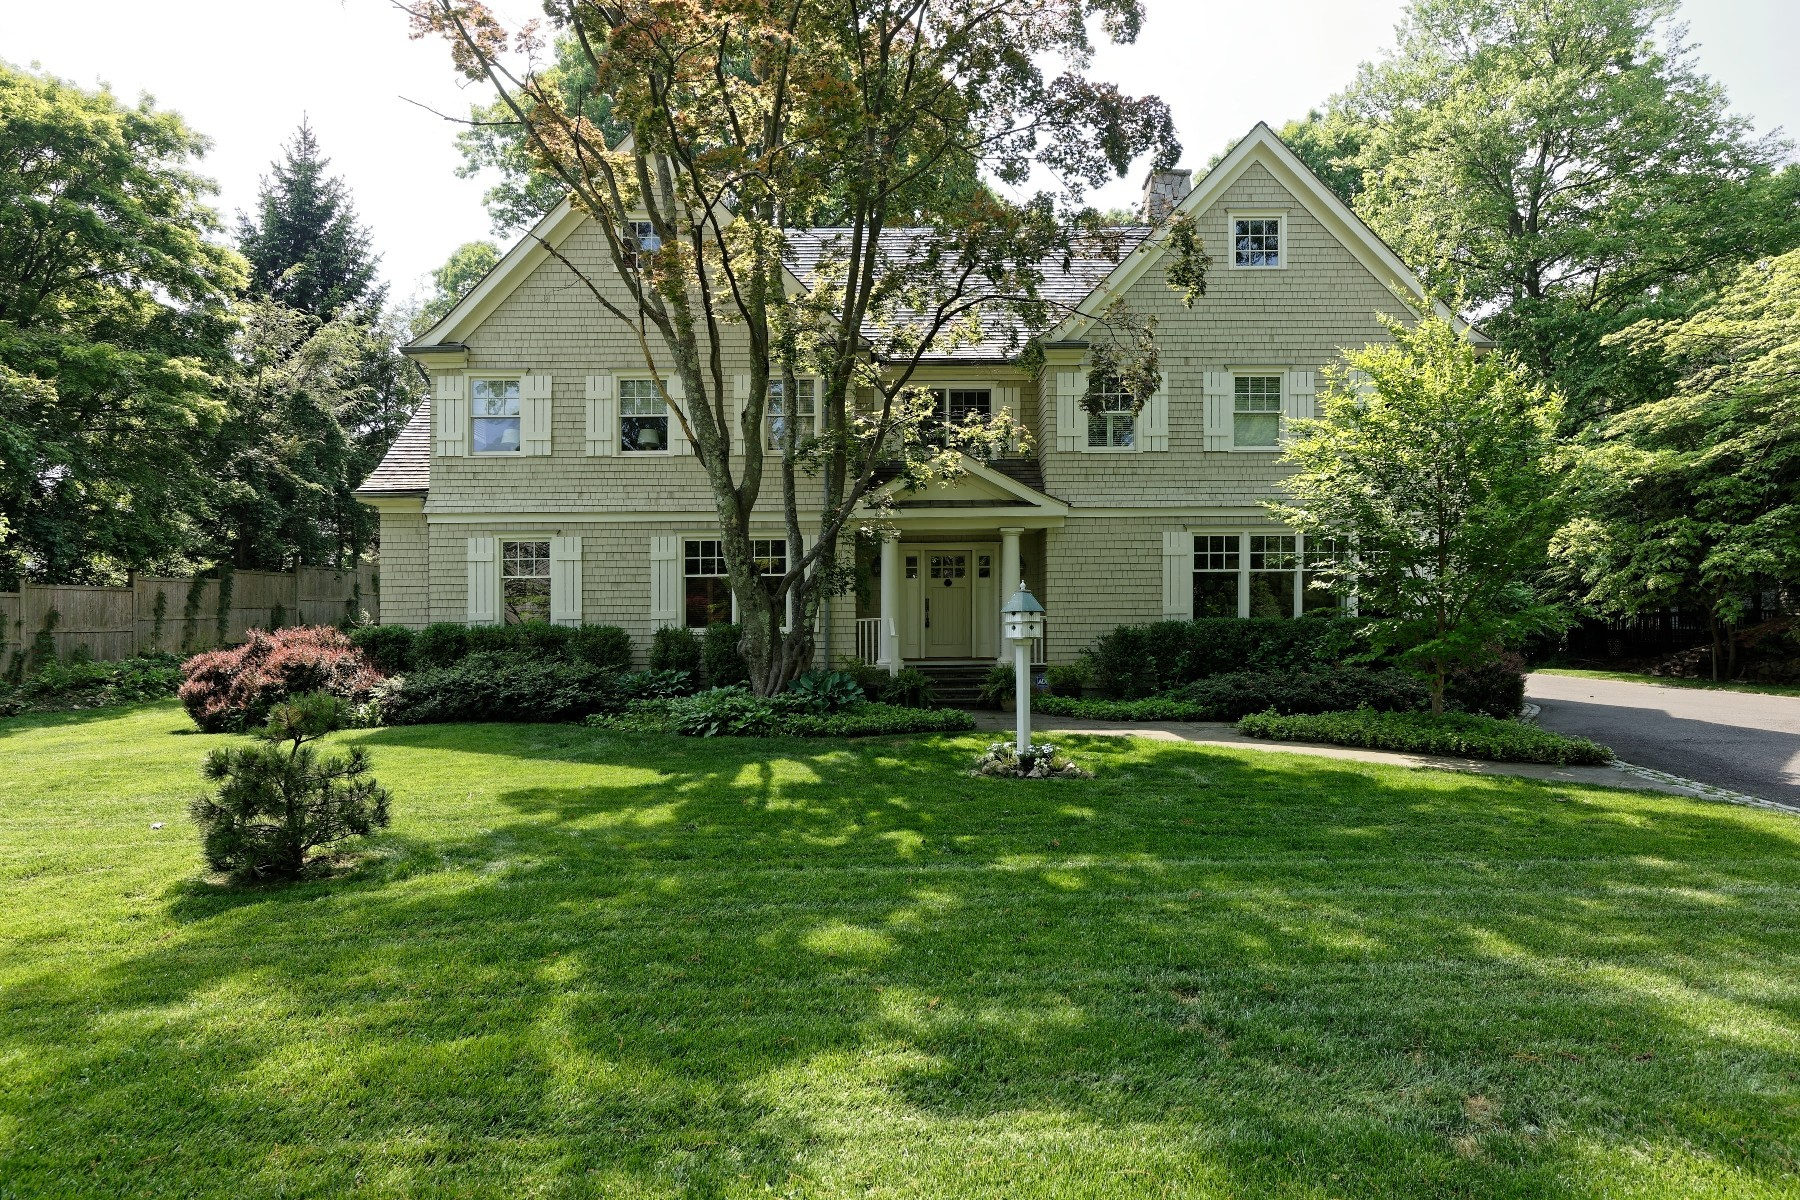 Single Family Home for Sale at Sophisticated New England Home in Rowayton's waterfront community 7 Ledge Road Rowayton, Norwalk, Connecticut, 06853 United States